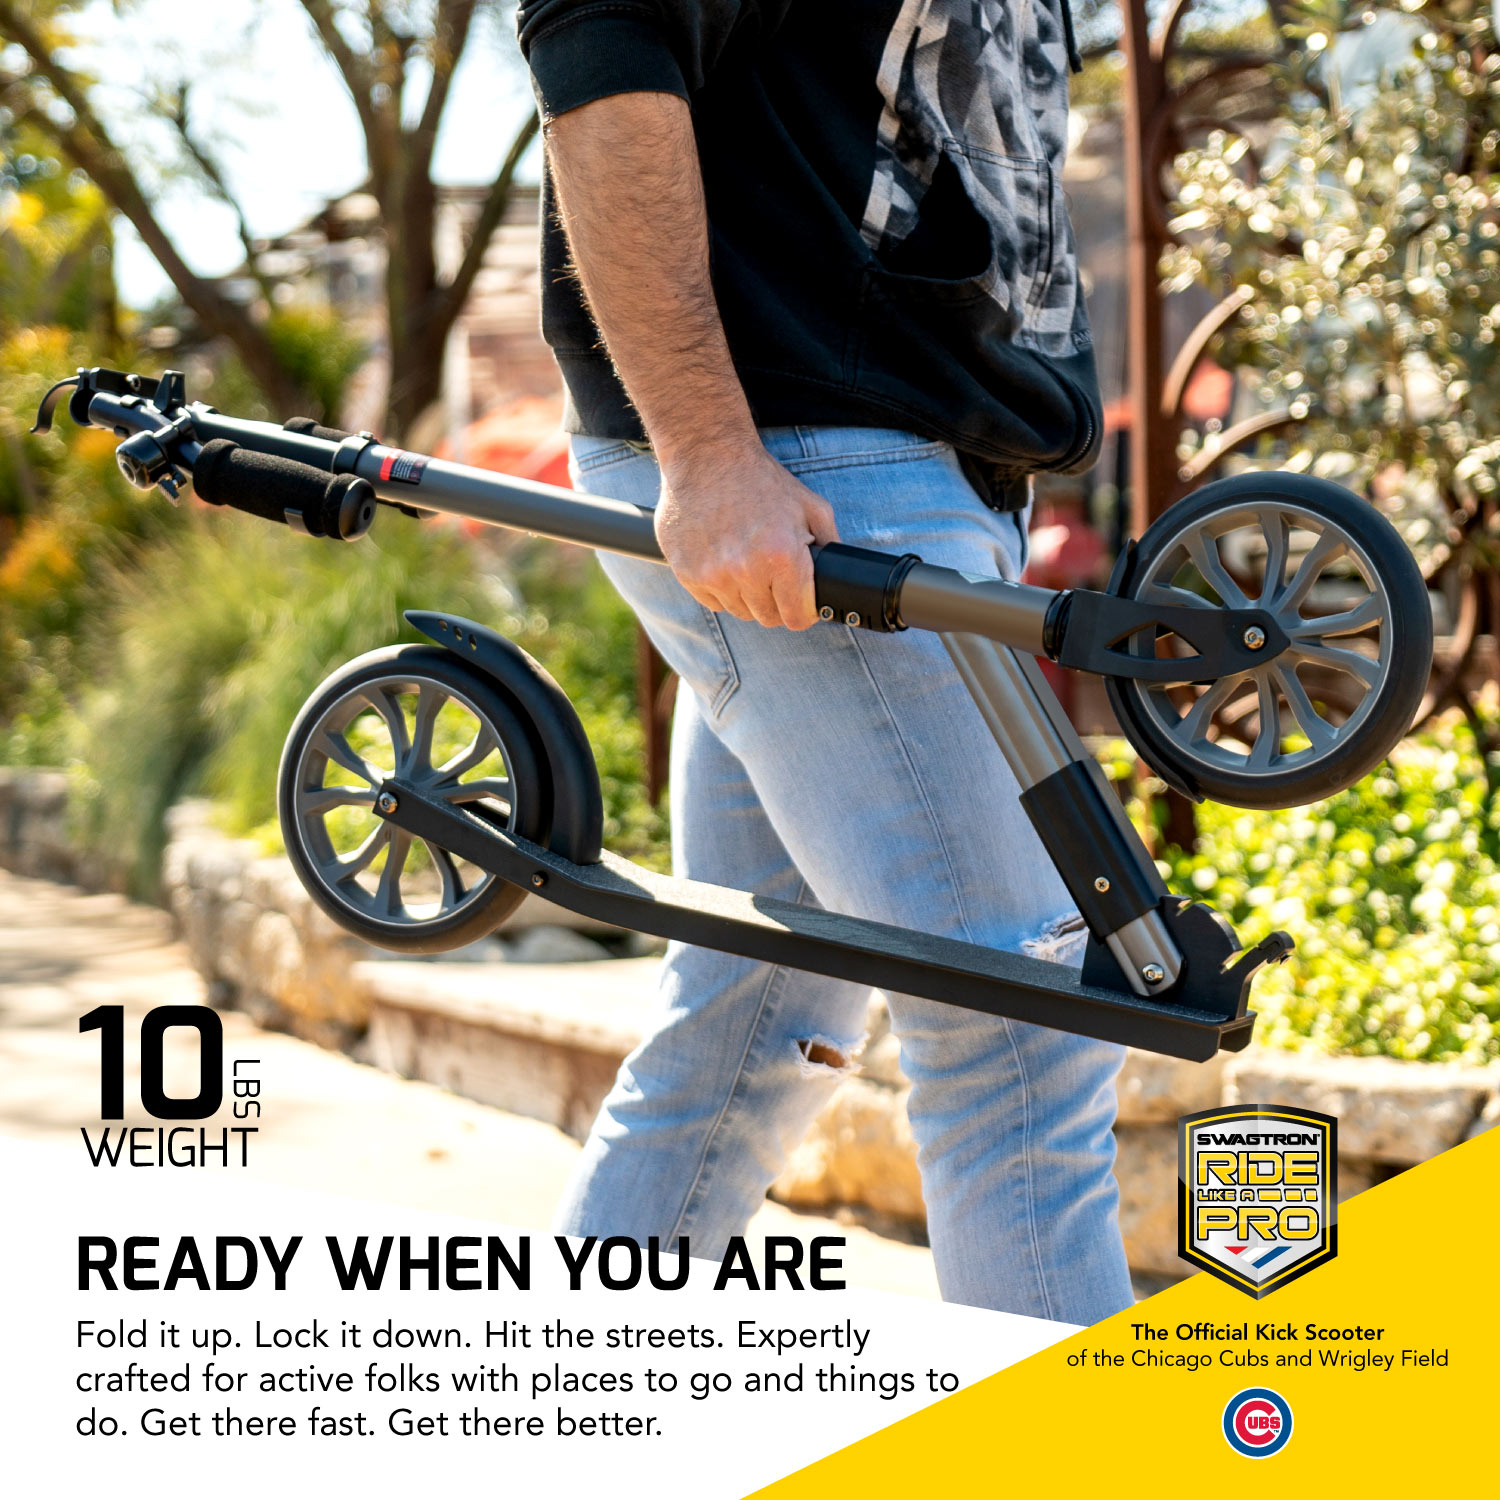 220LB Max Load Teens Foldable Swagtron K8 Titan Commuter Kick Scooter for Adults Lightweight w//ABEC-9 Wheel Bearings Height-Adjustable